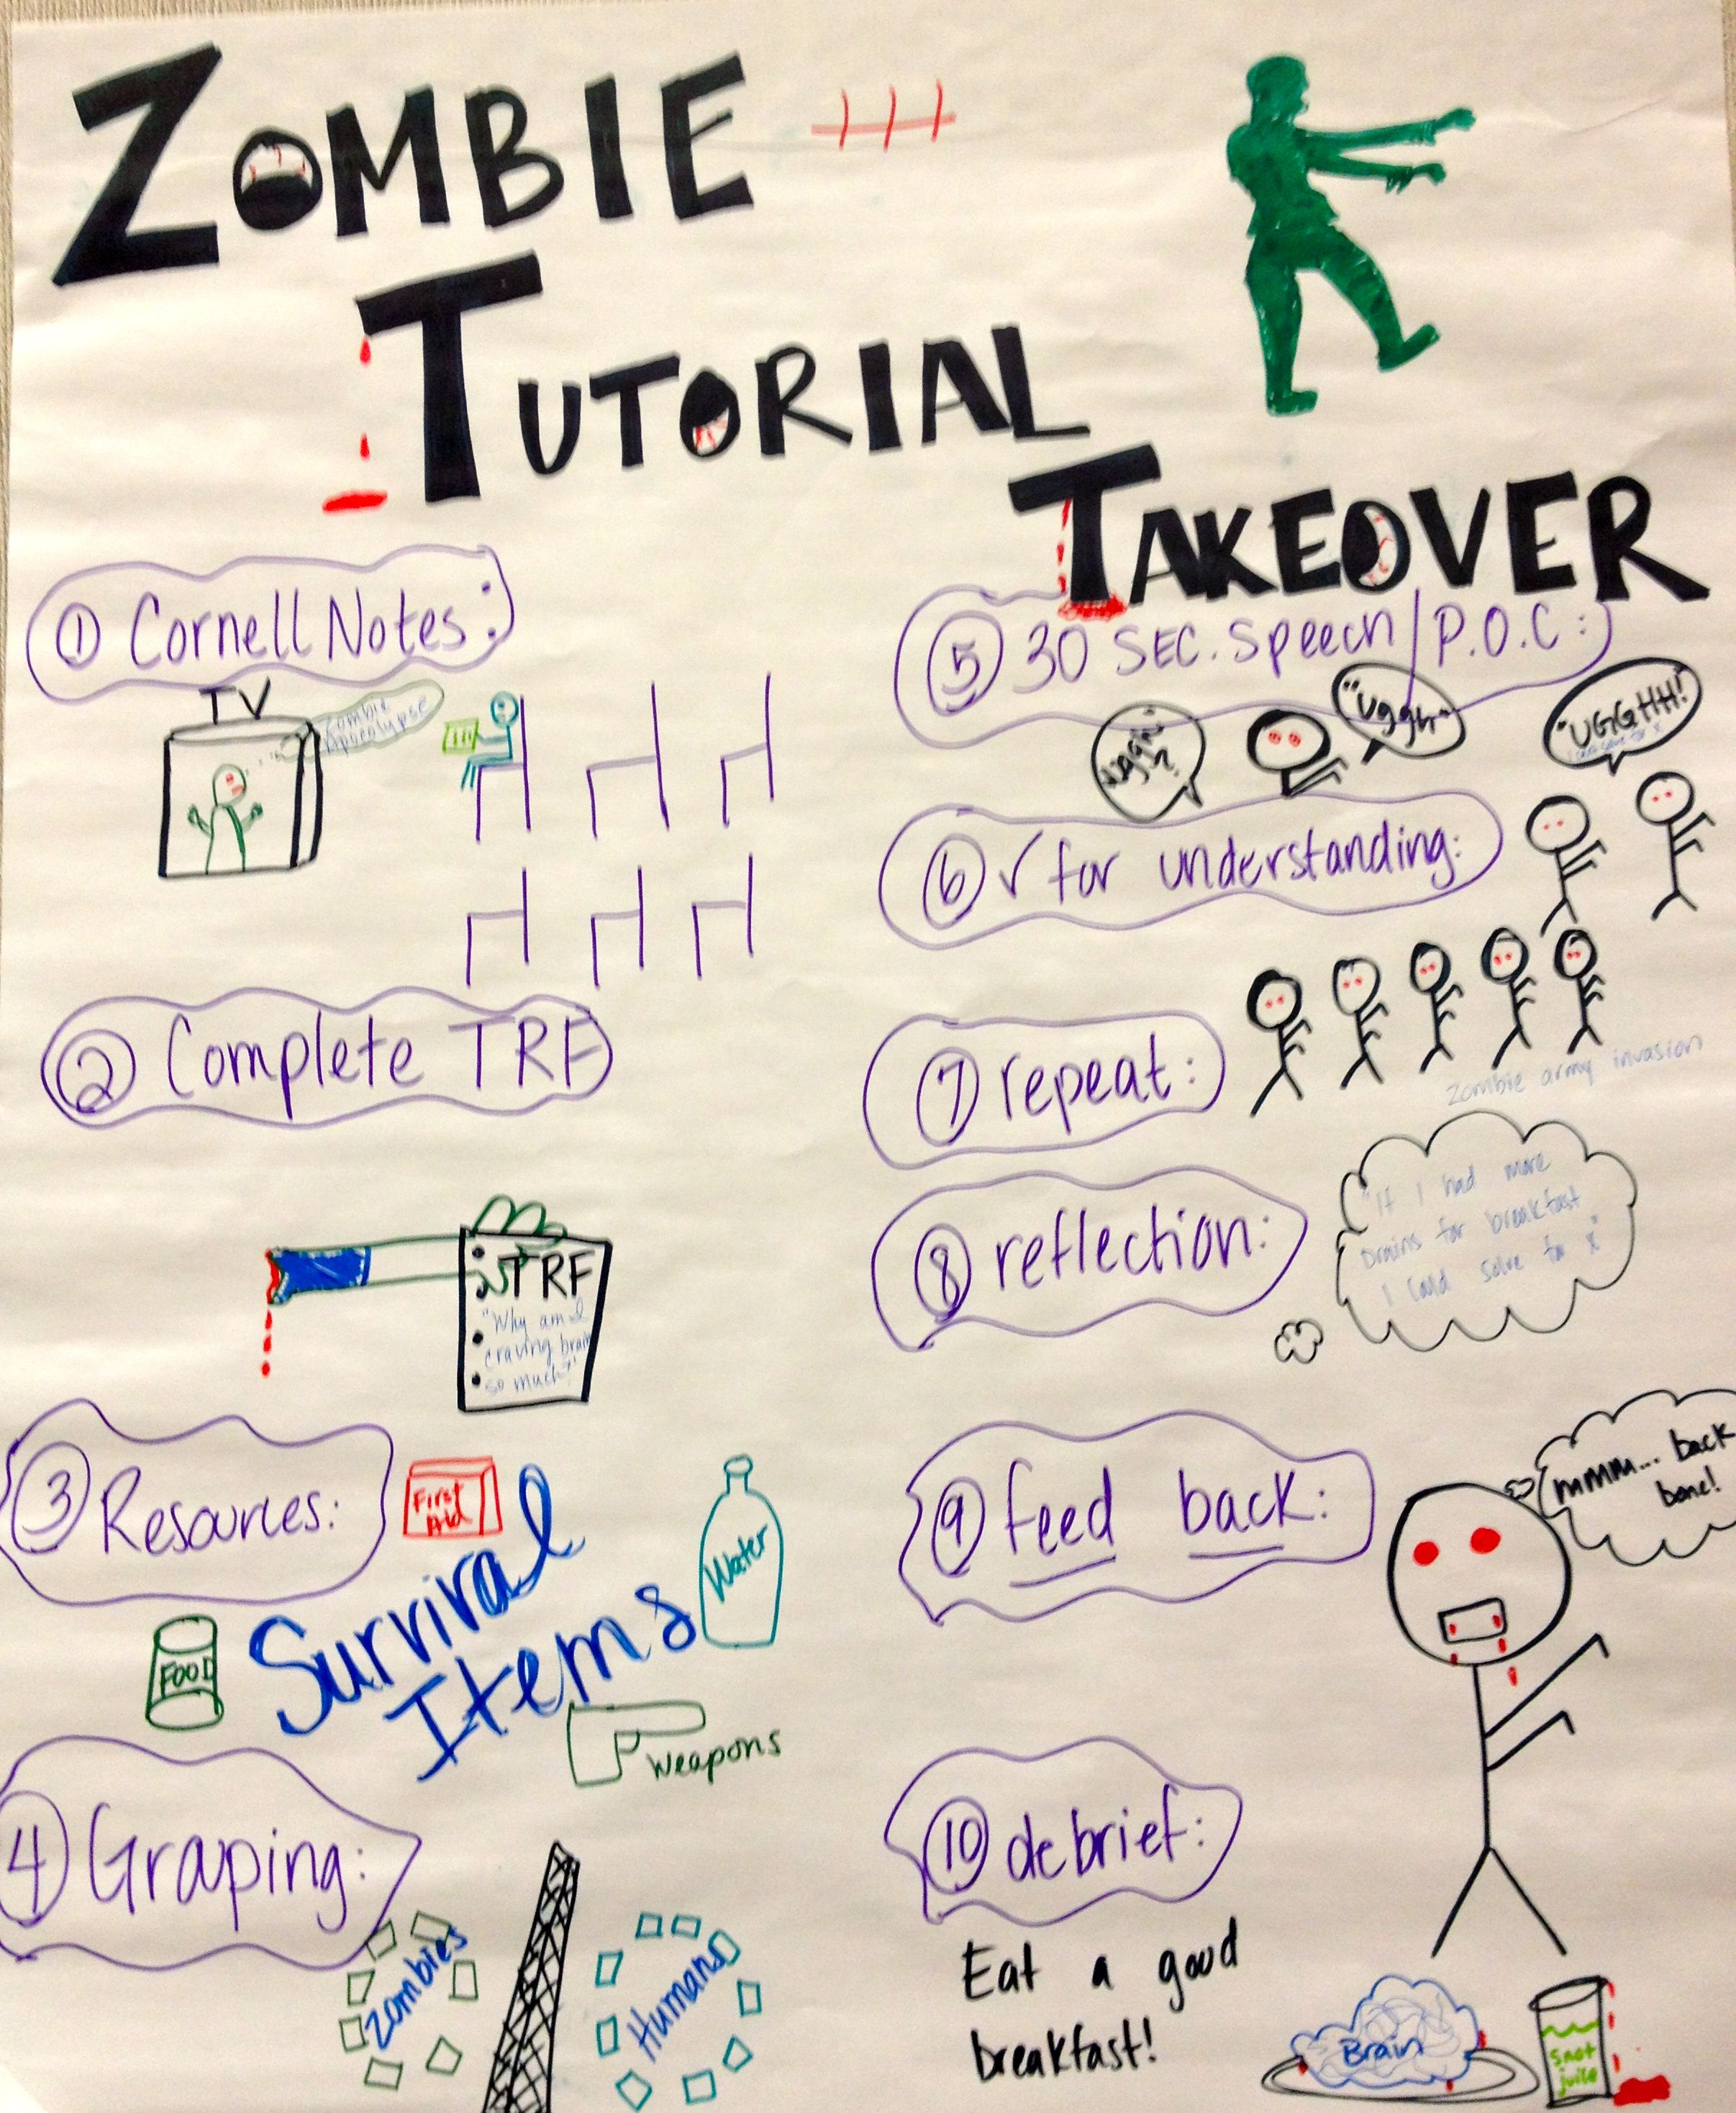 The Avid Tutorial Process Using A Zombie Theme Created At Our